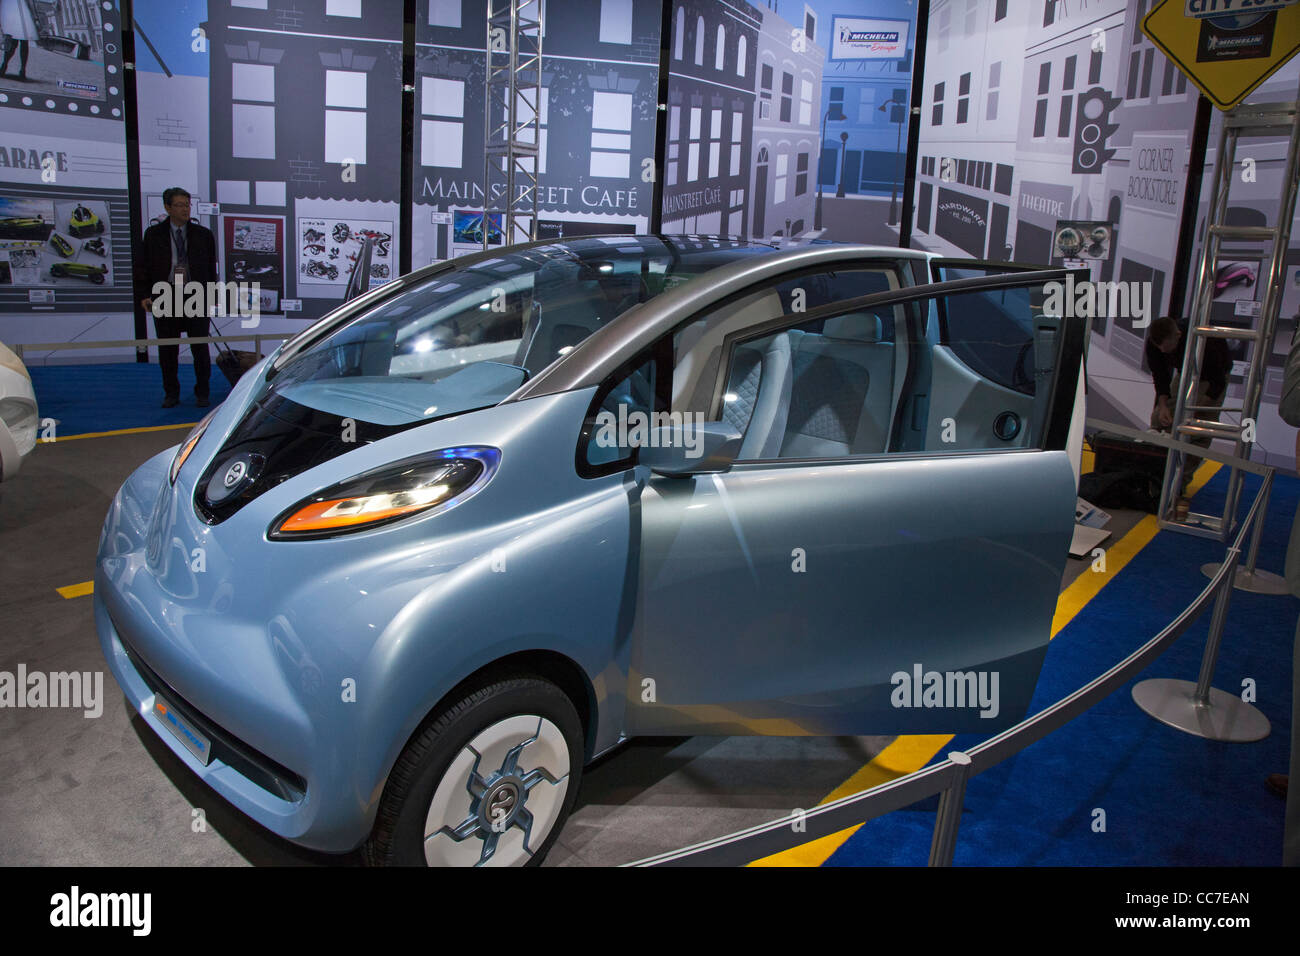 Tata Technologies' electric mobility concept vehicle (eMO) - Stock Image